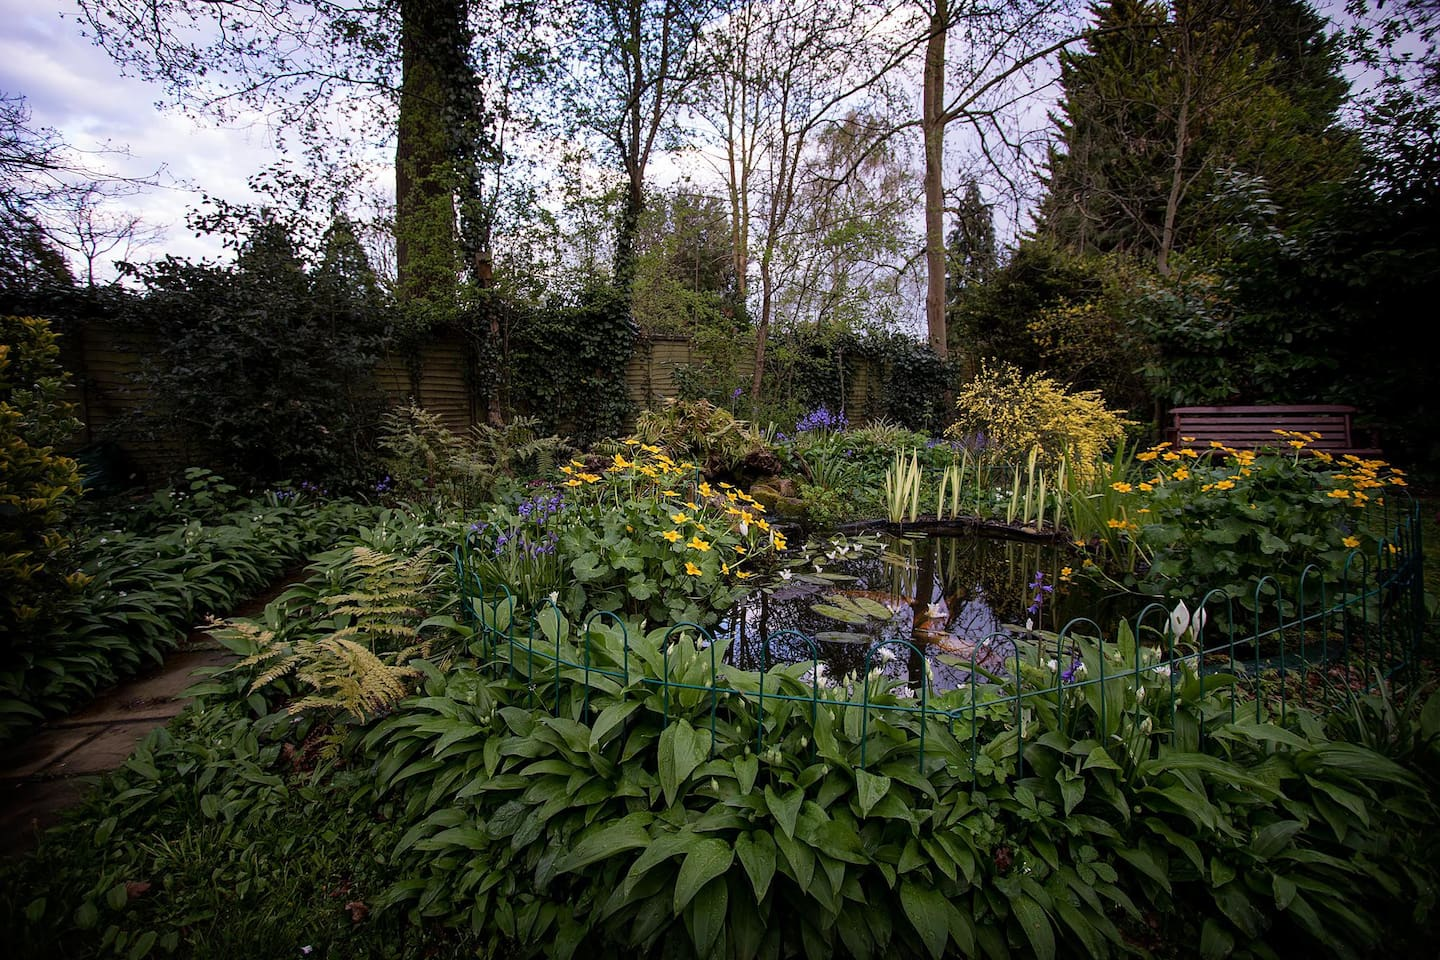 Pond at the end of the garden